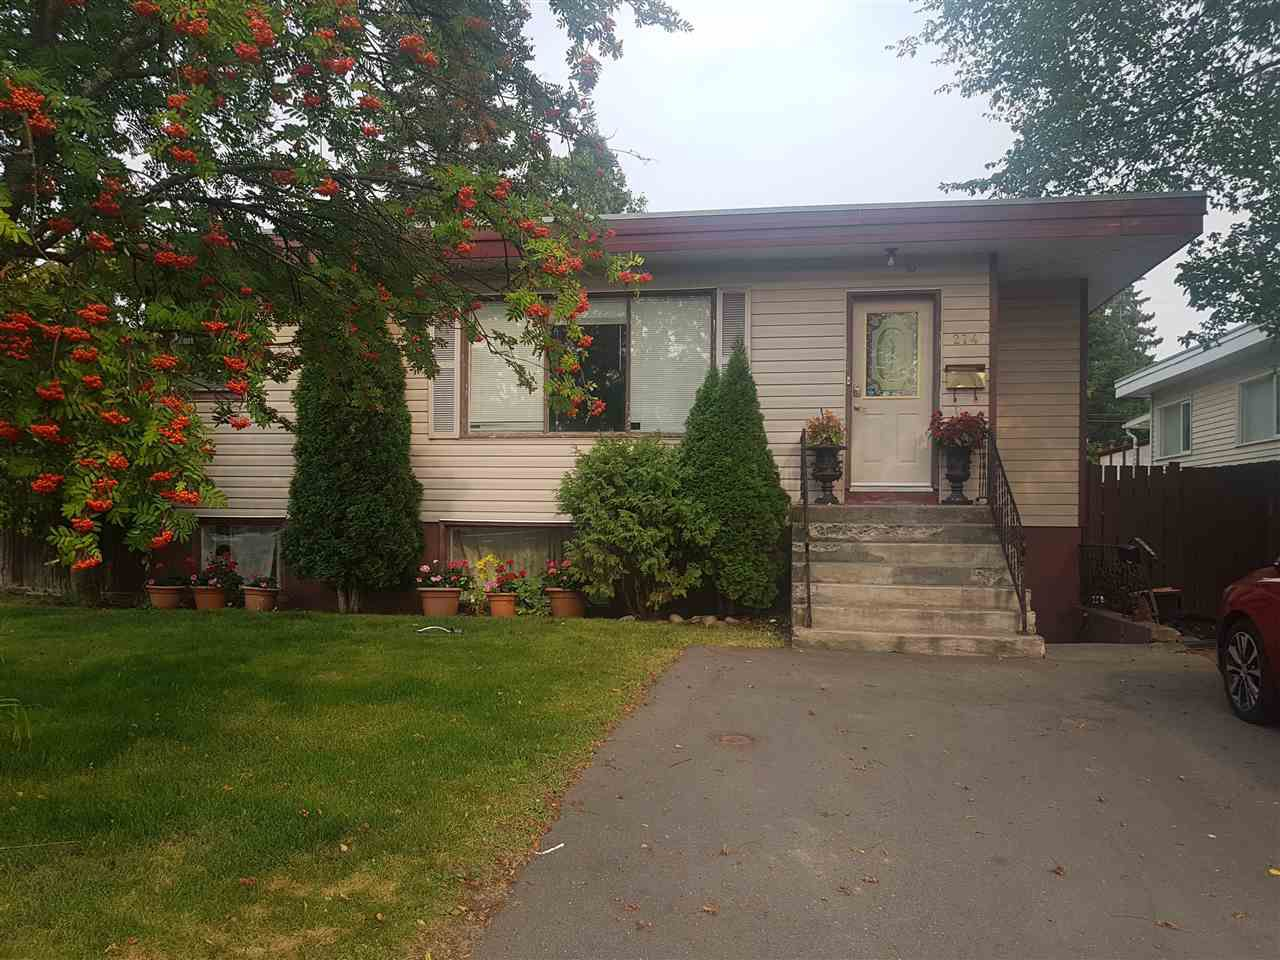 Main Photo: 274 JOHNSON Street in Prince George: Central House for sale (PG City Central (Zone 72))  : MLS®# R2298336